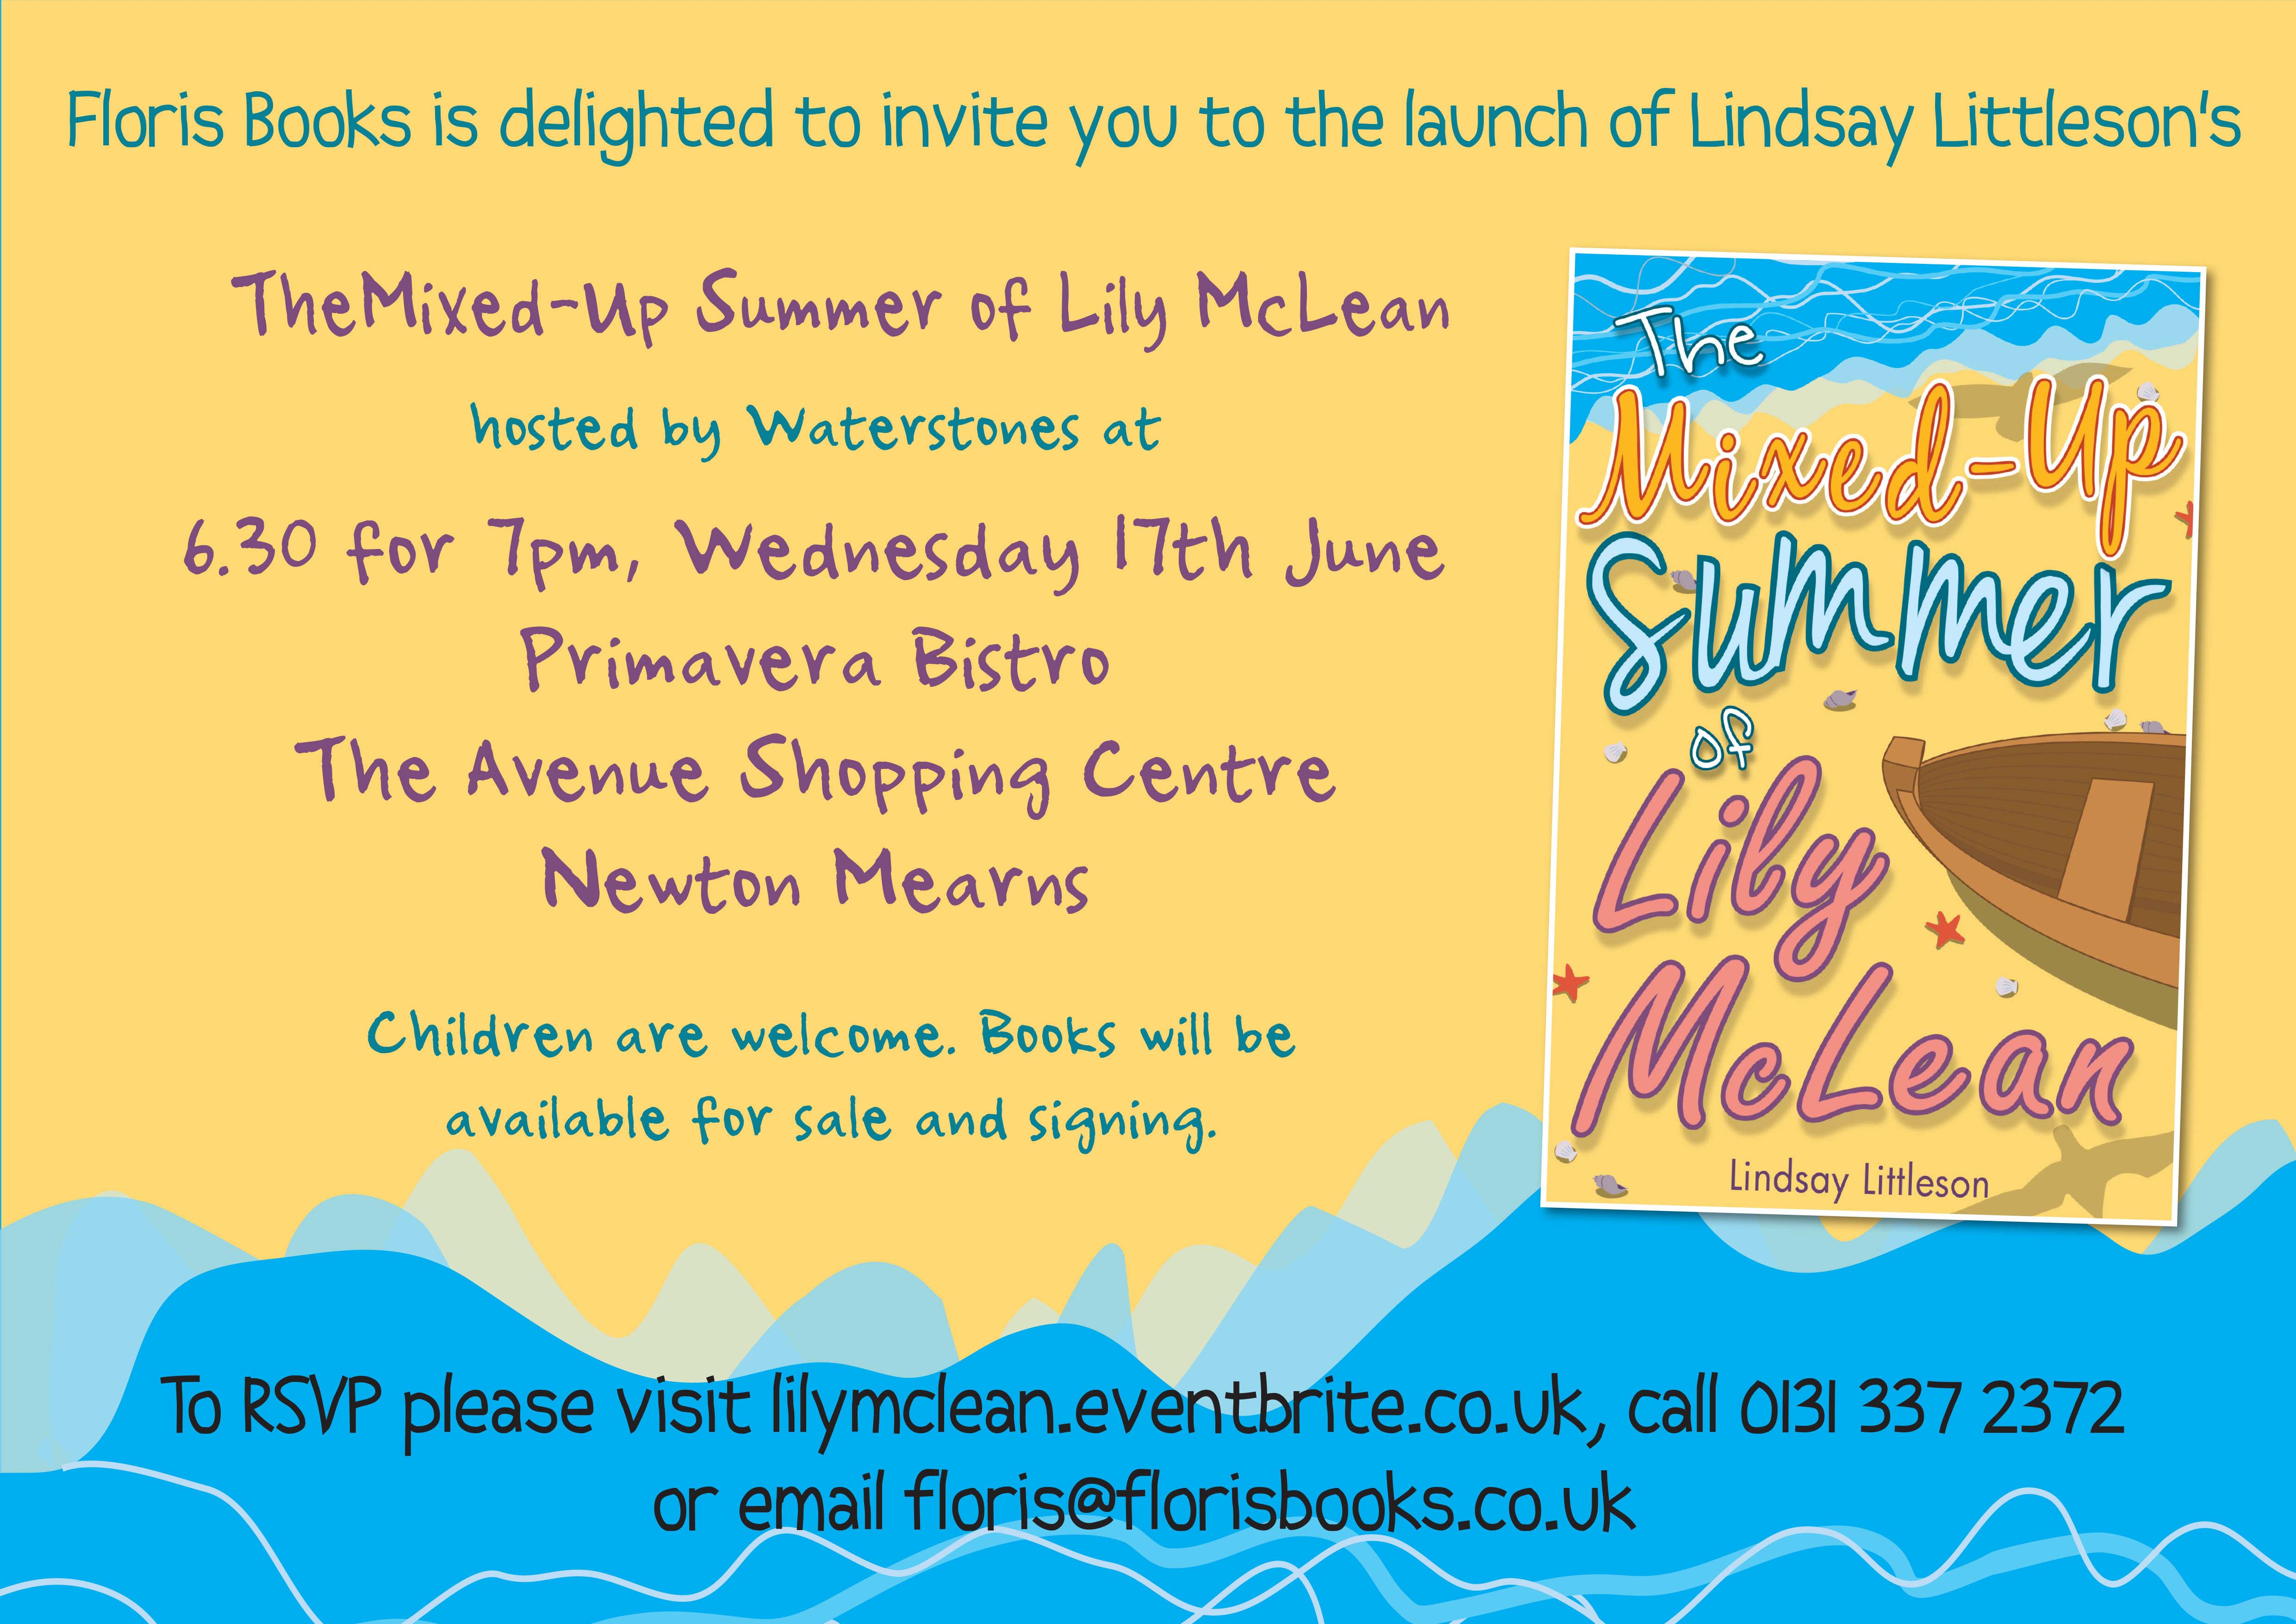 The Mixed-Up Summer of Lily McLean launch invite